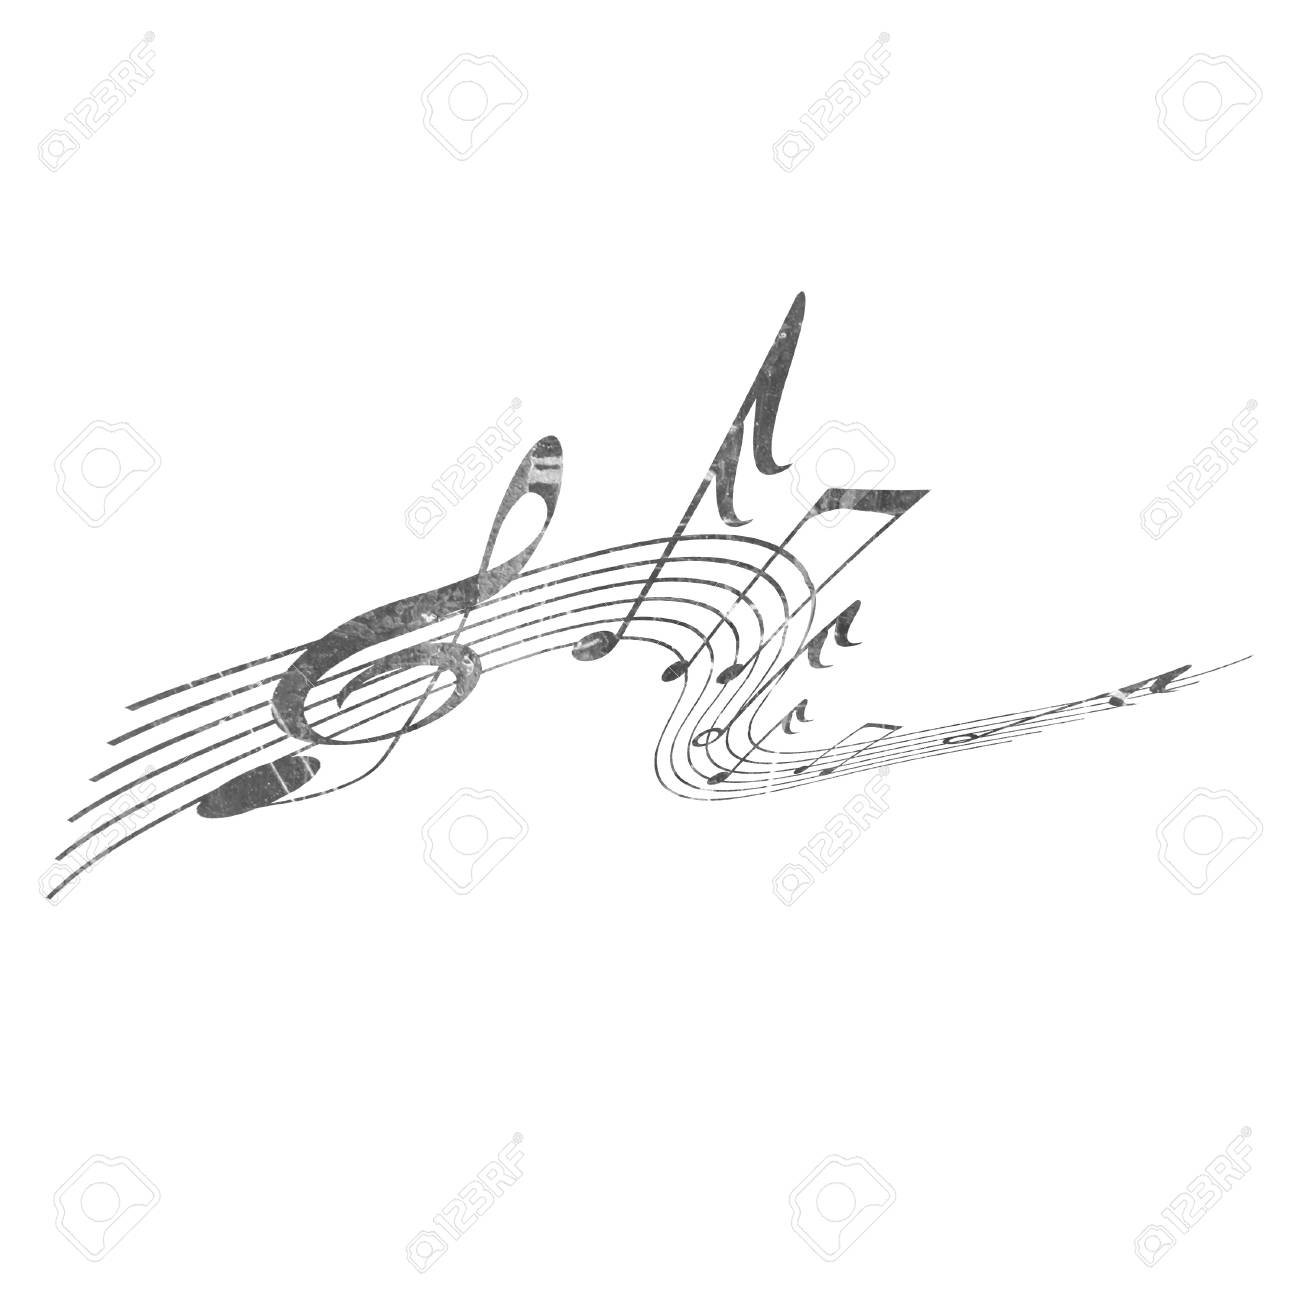 musical notes on a solid white background Stock Photo - 10337041